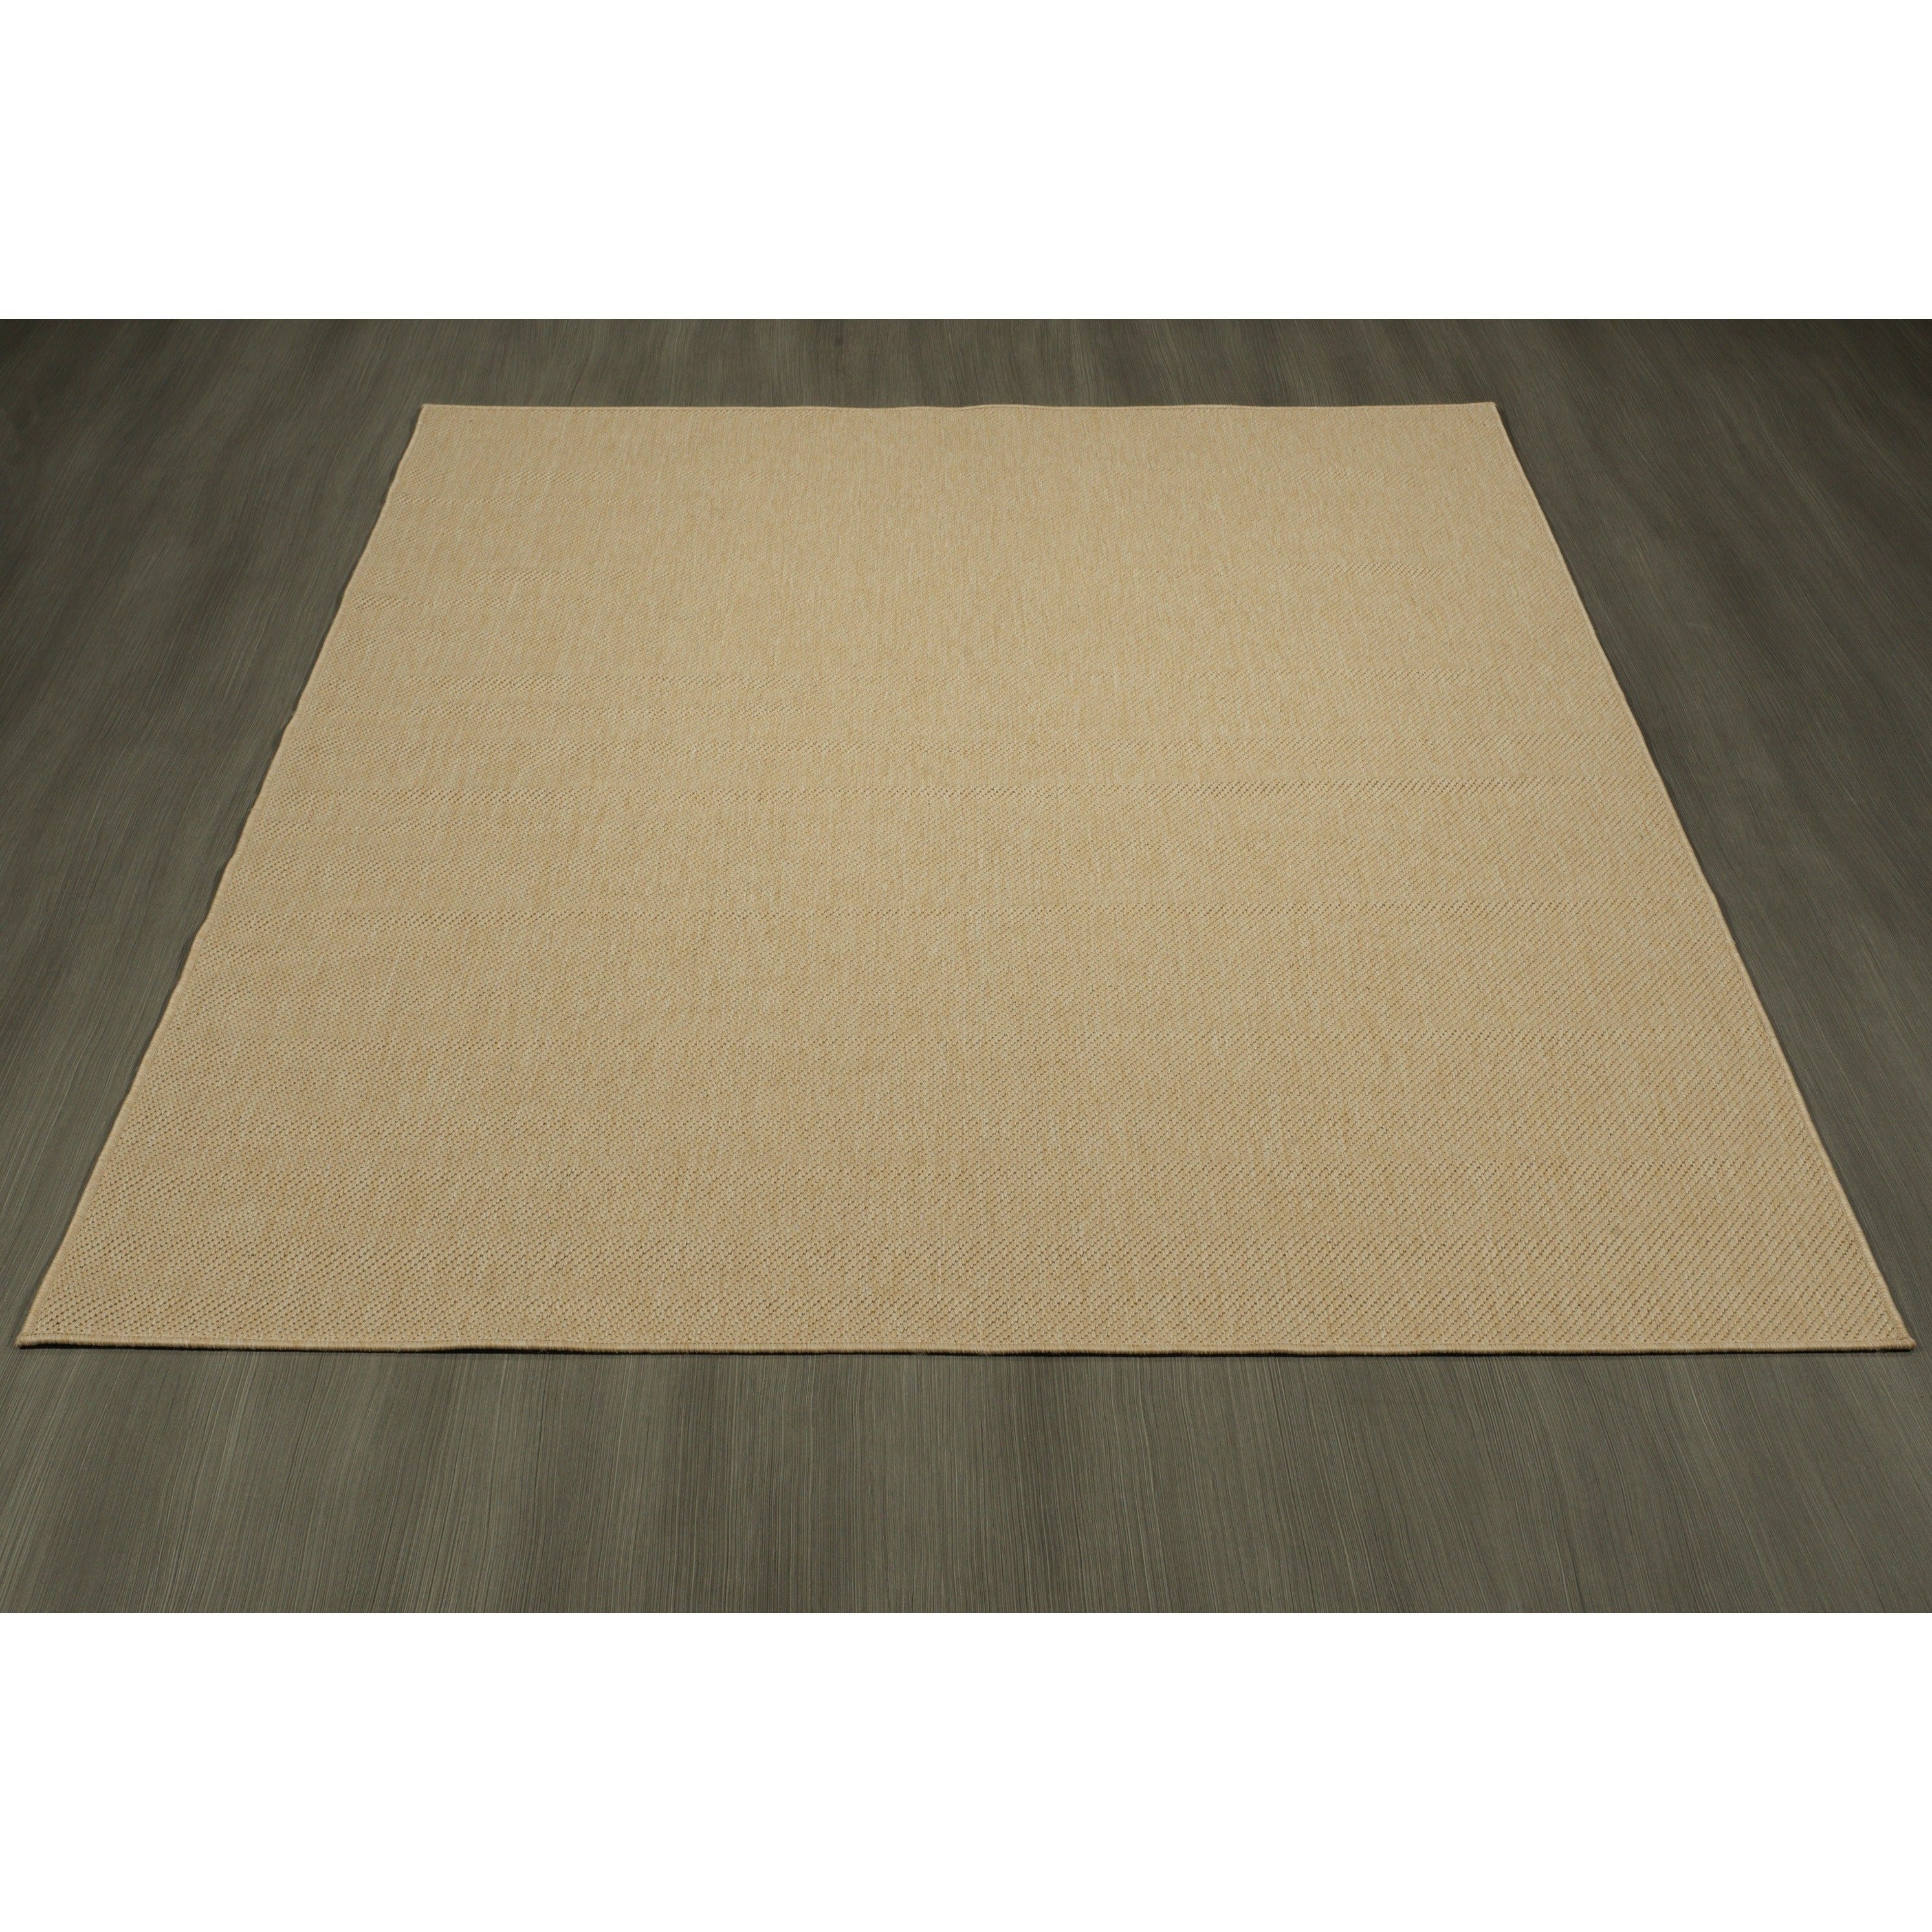 Shop ottomanson jardin collection natural solid design indoor outdoor jute backing area synthetic sisal rug 53 x 73 on sale free shipping today